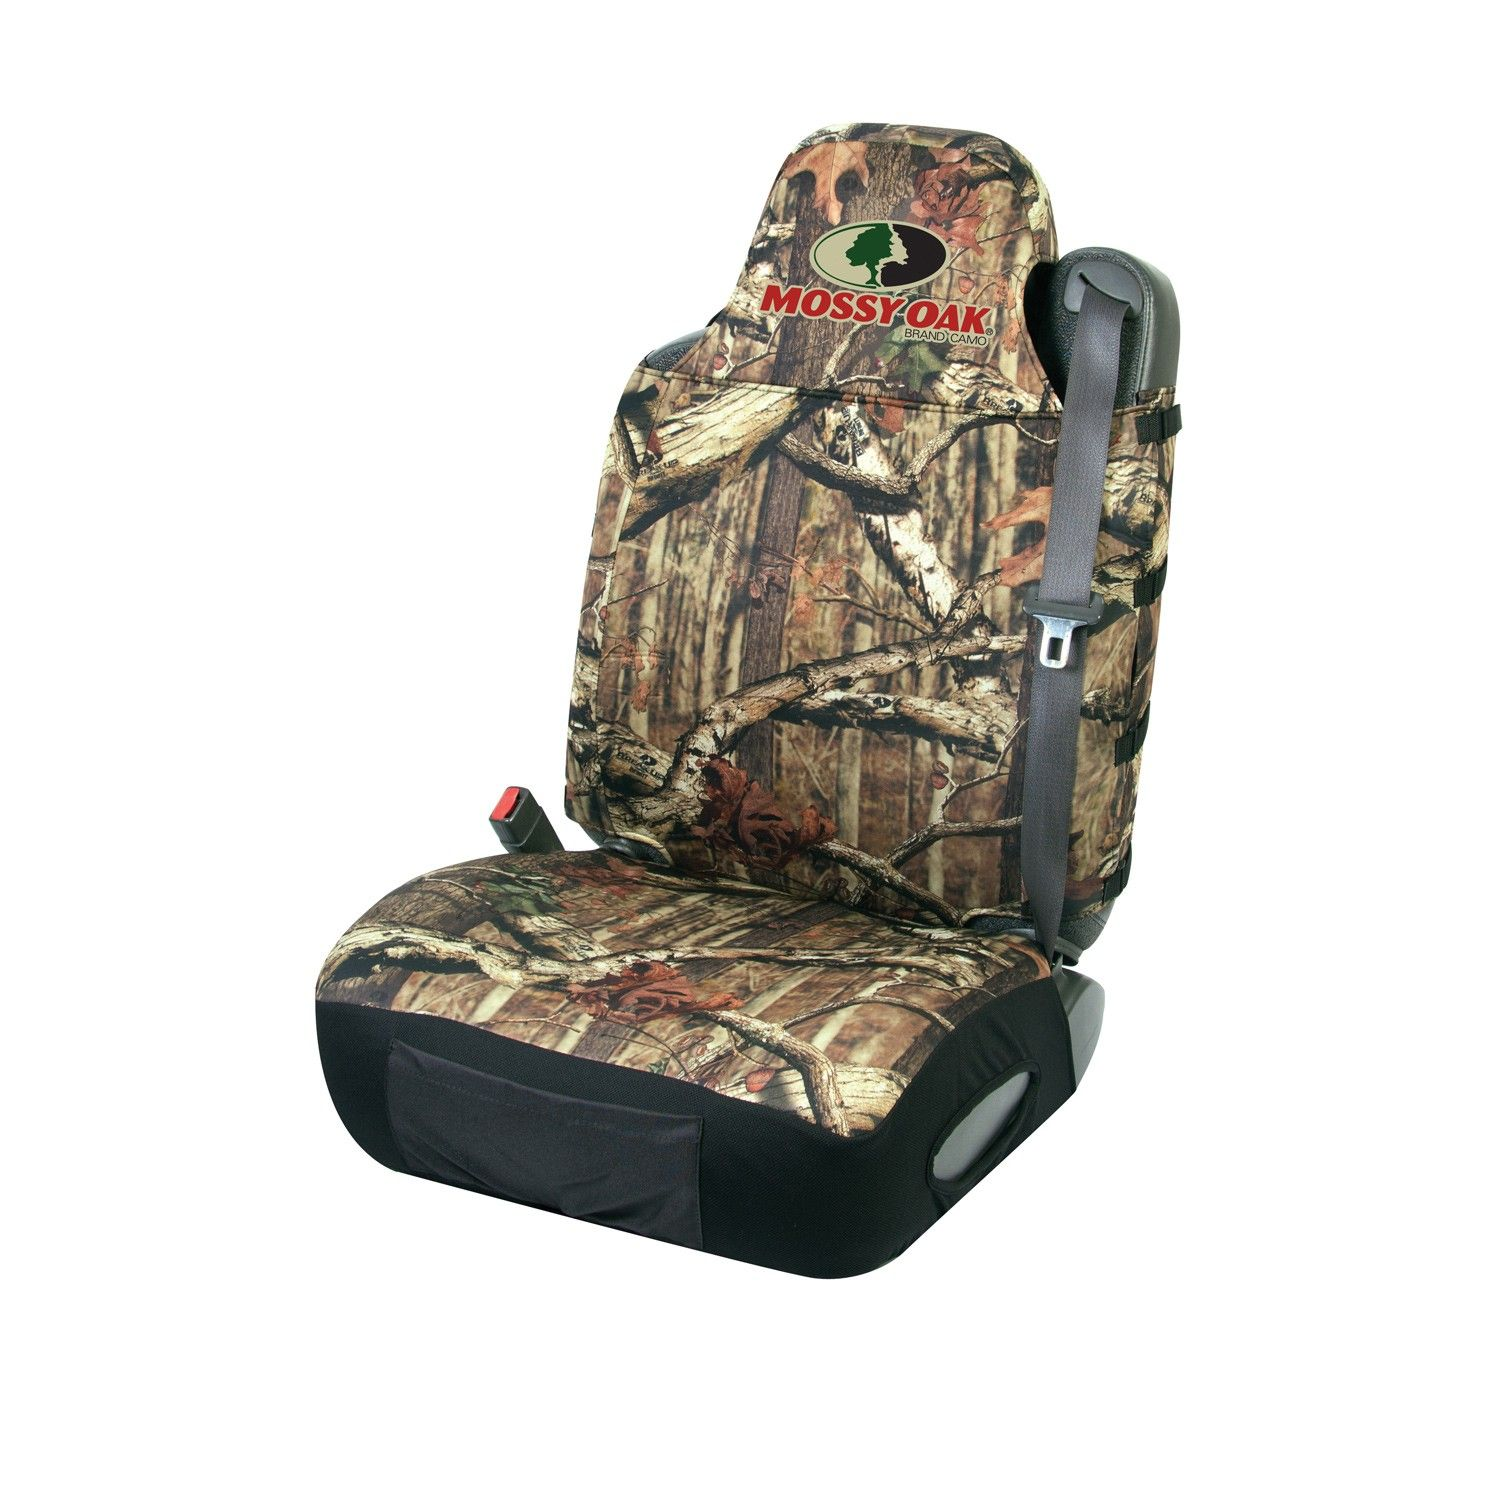 Mossy Oak Seat Cover We Just Got These His And Hers